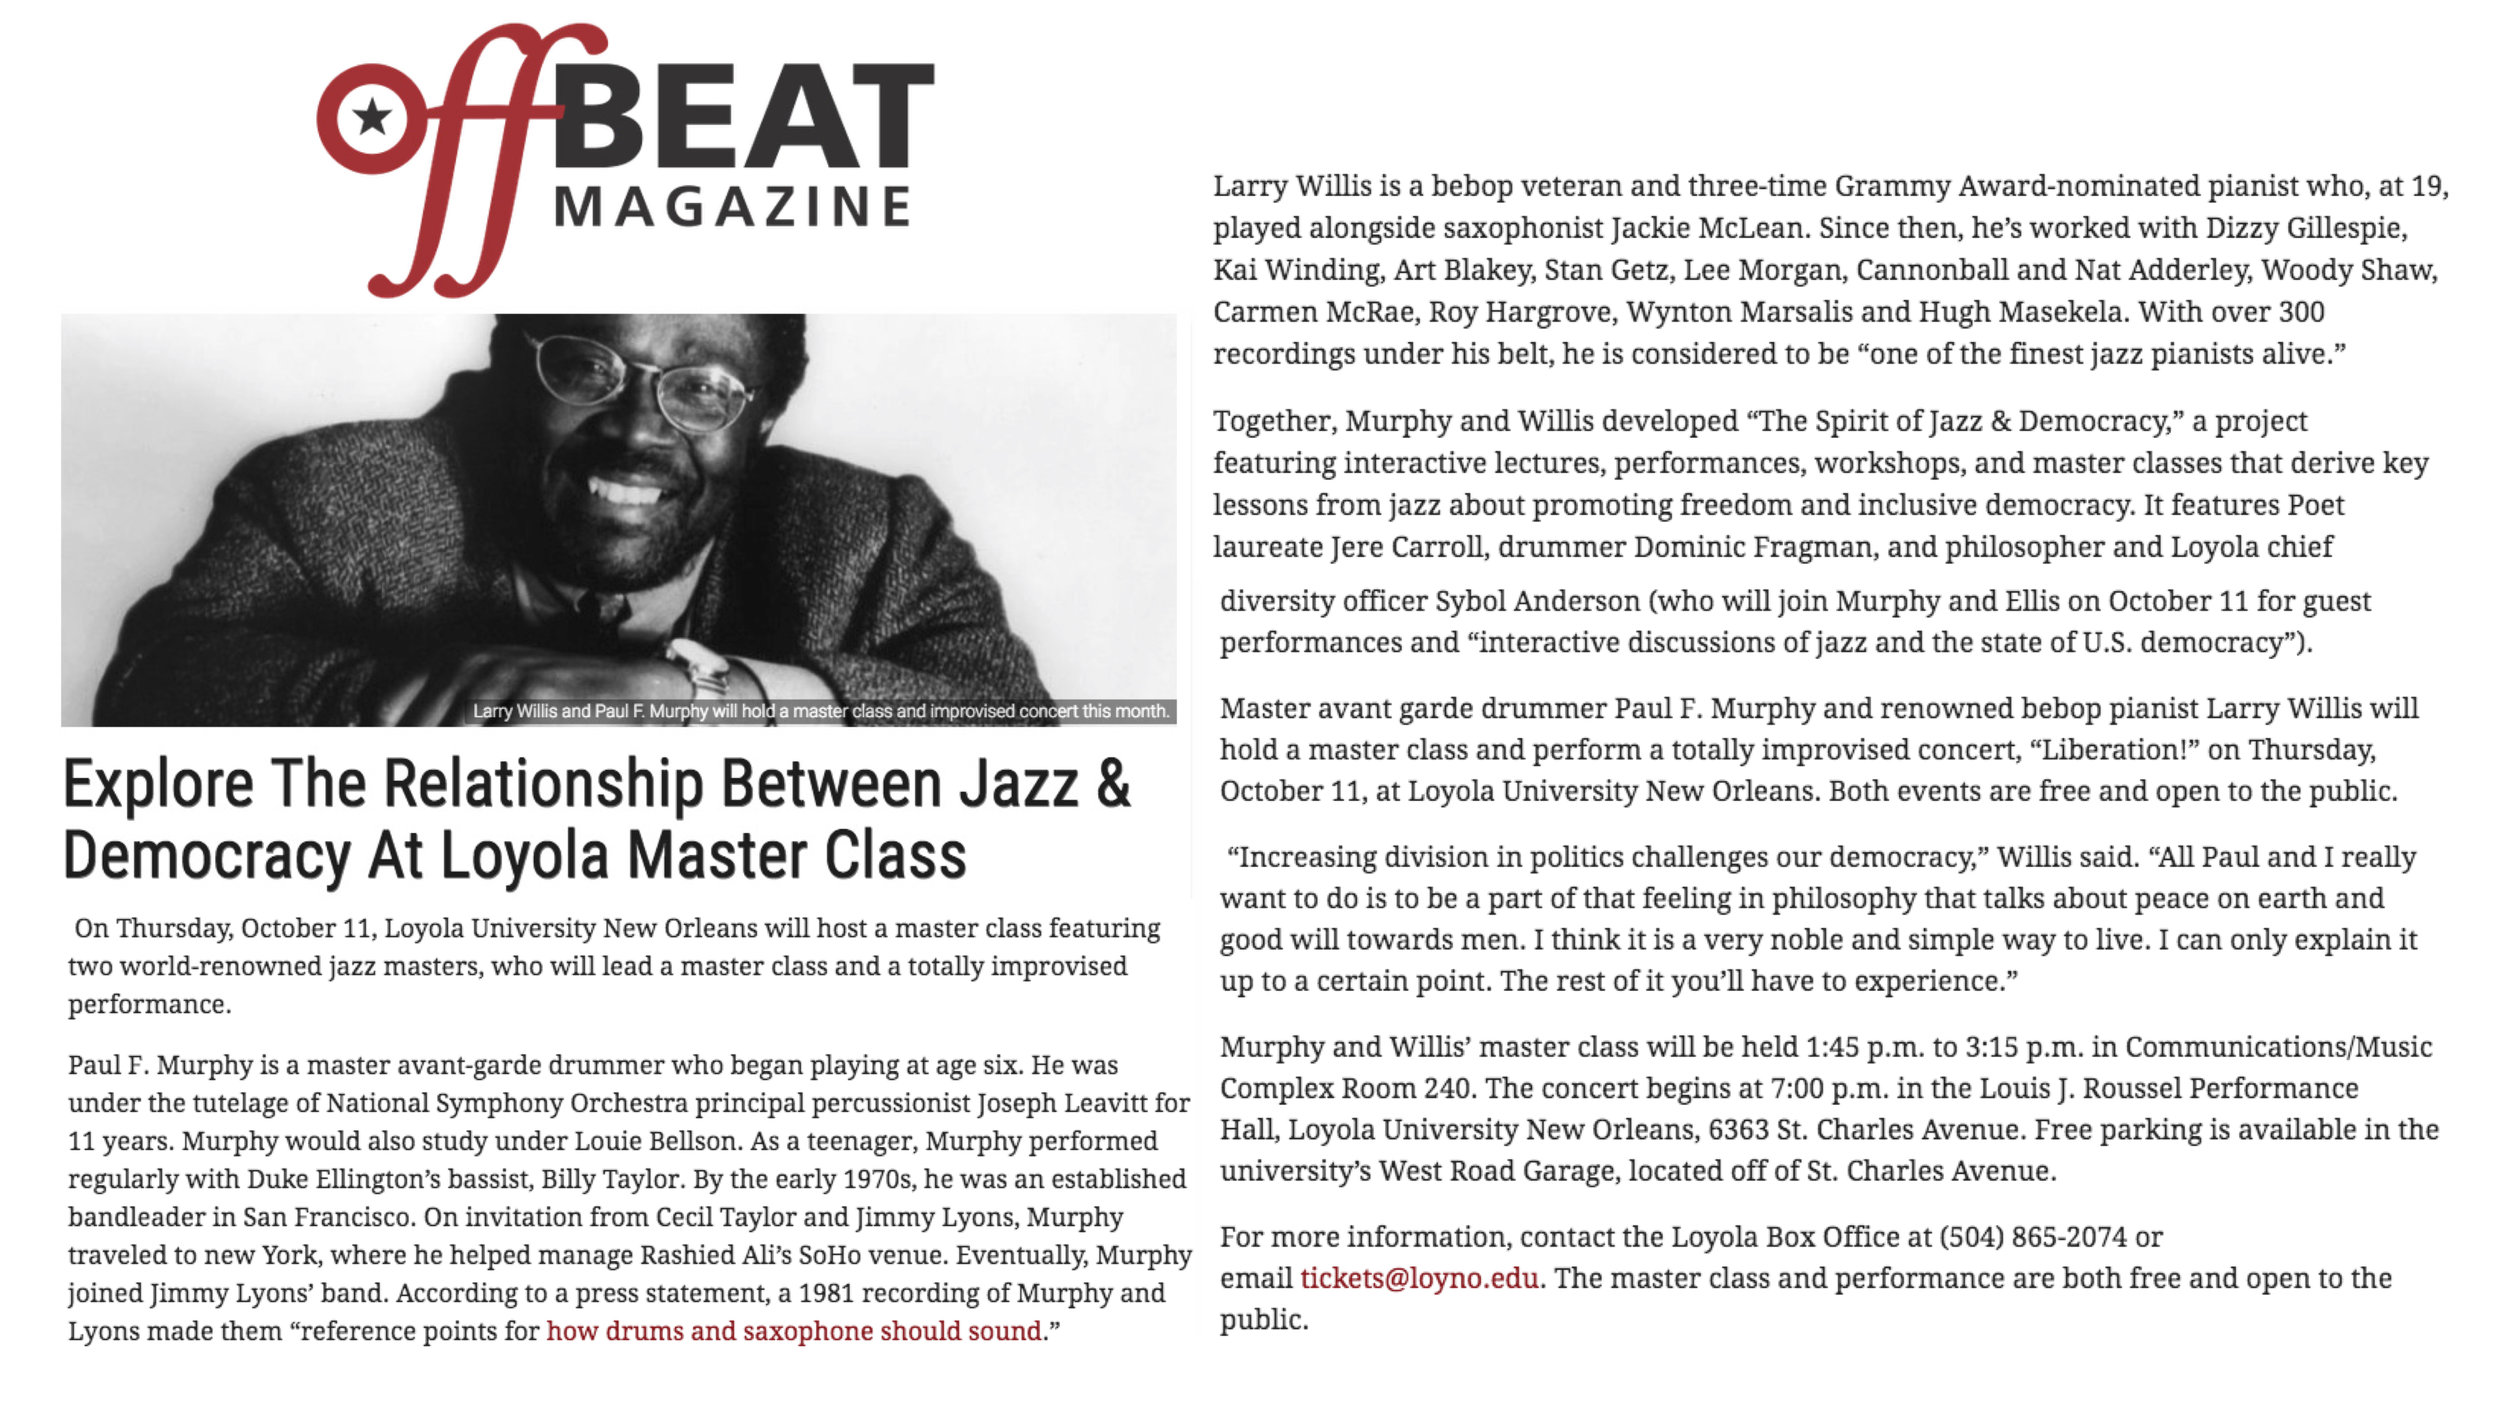 Article from New Orleans magazine, Off Beat, covering the Spirit of Jazz & Democracy concert and masterclass at Loyola University New Orleans.